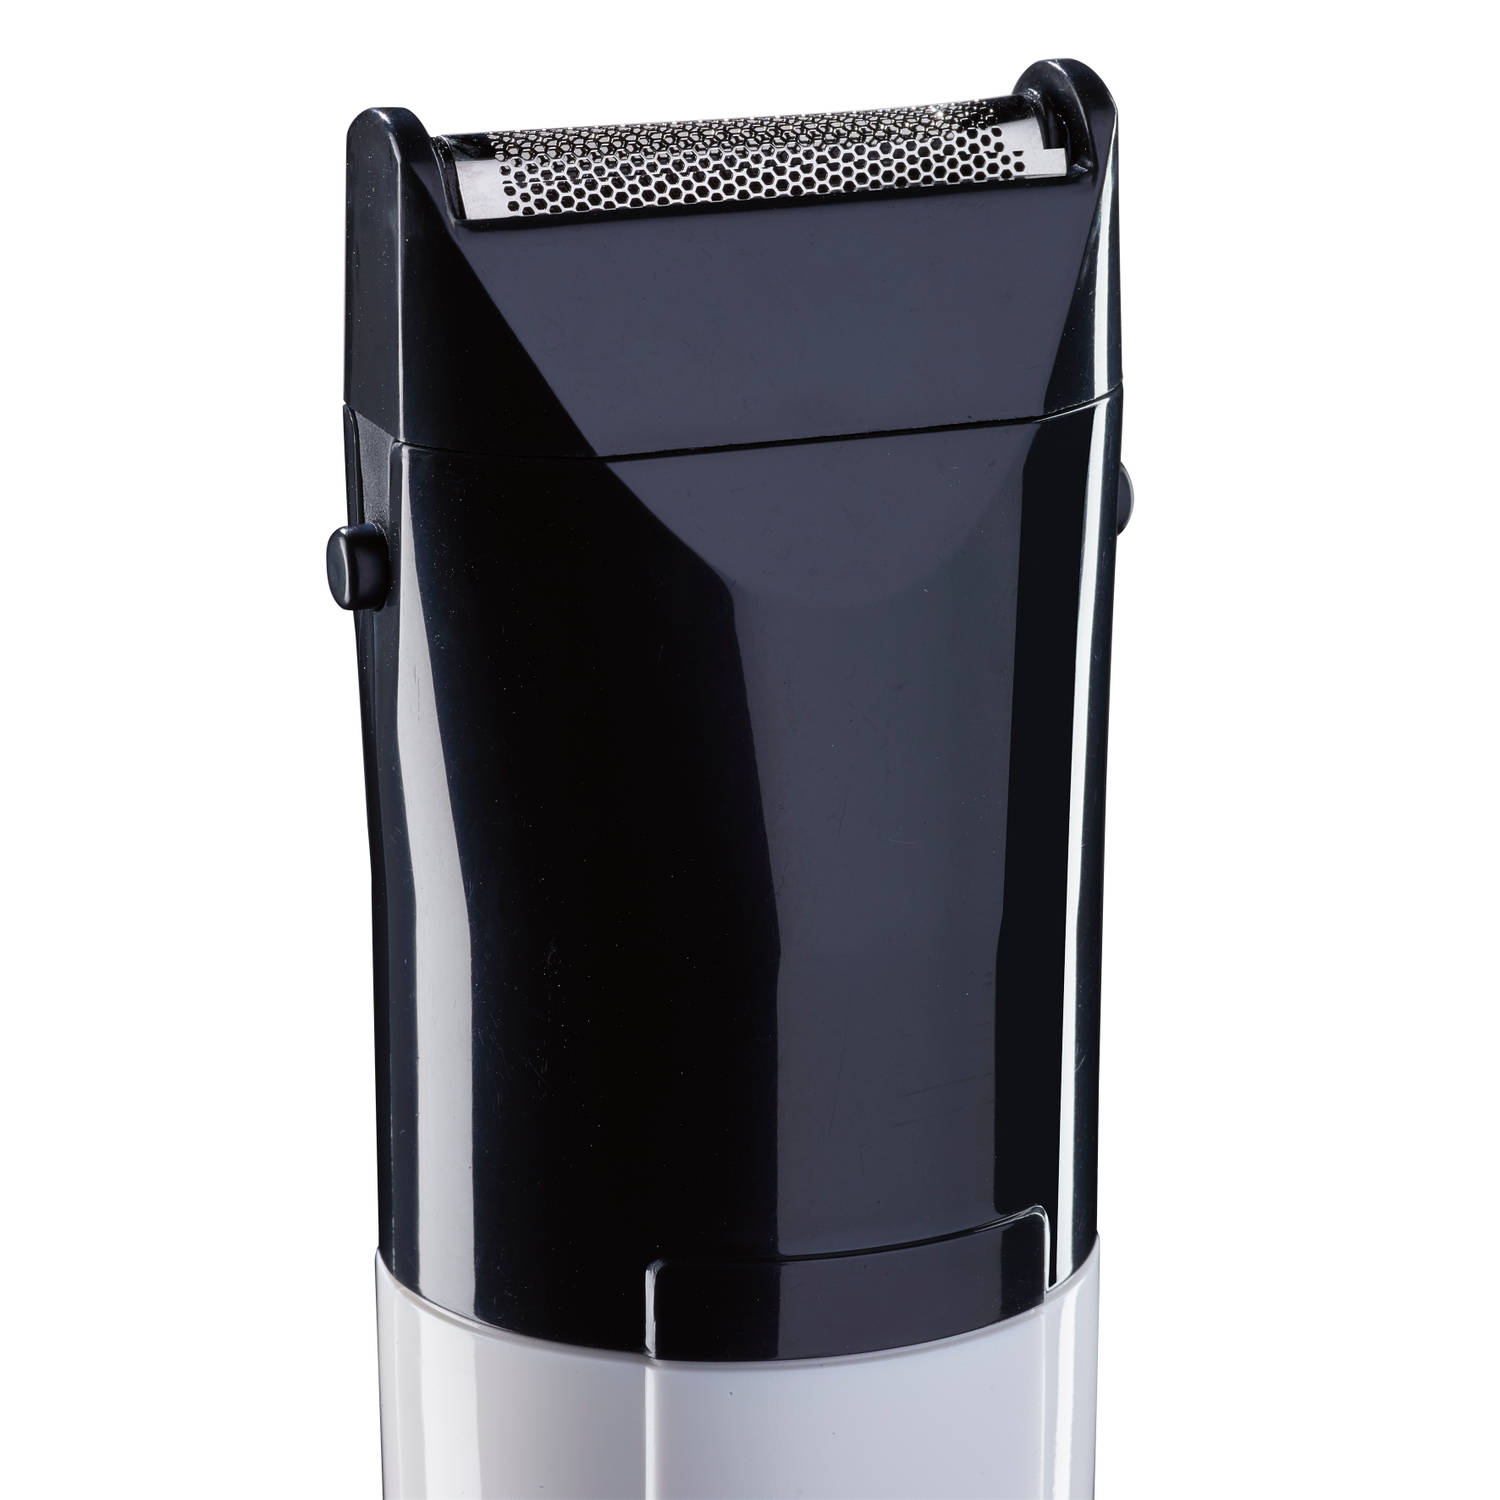 Afbeelding van BaByliss For Men baardtrimmer Wtech Precision Plus T830E